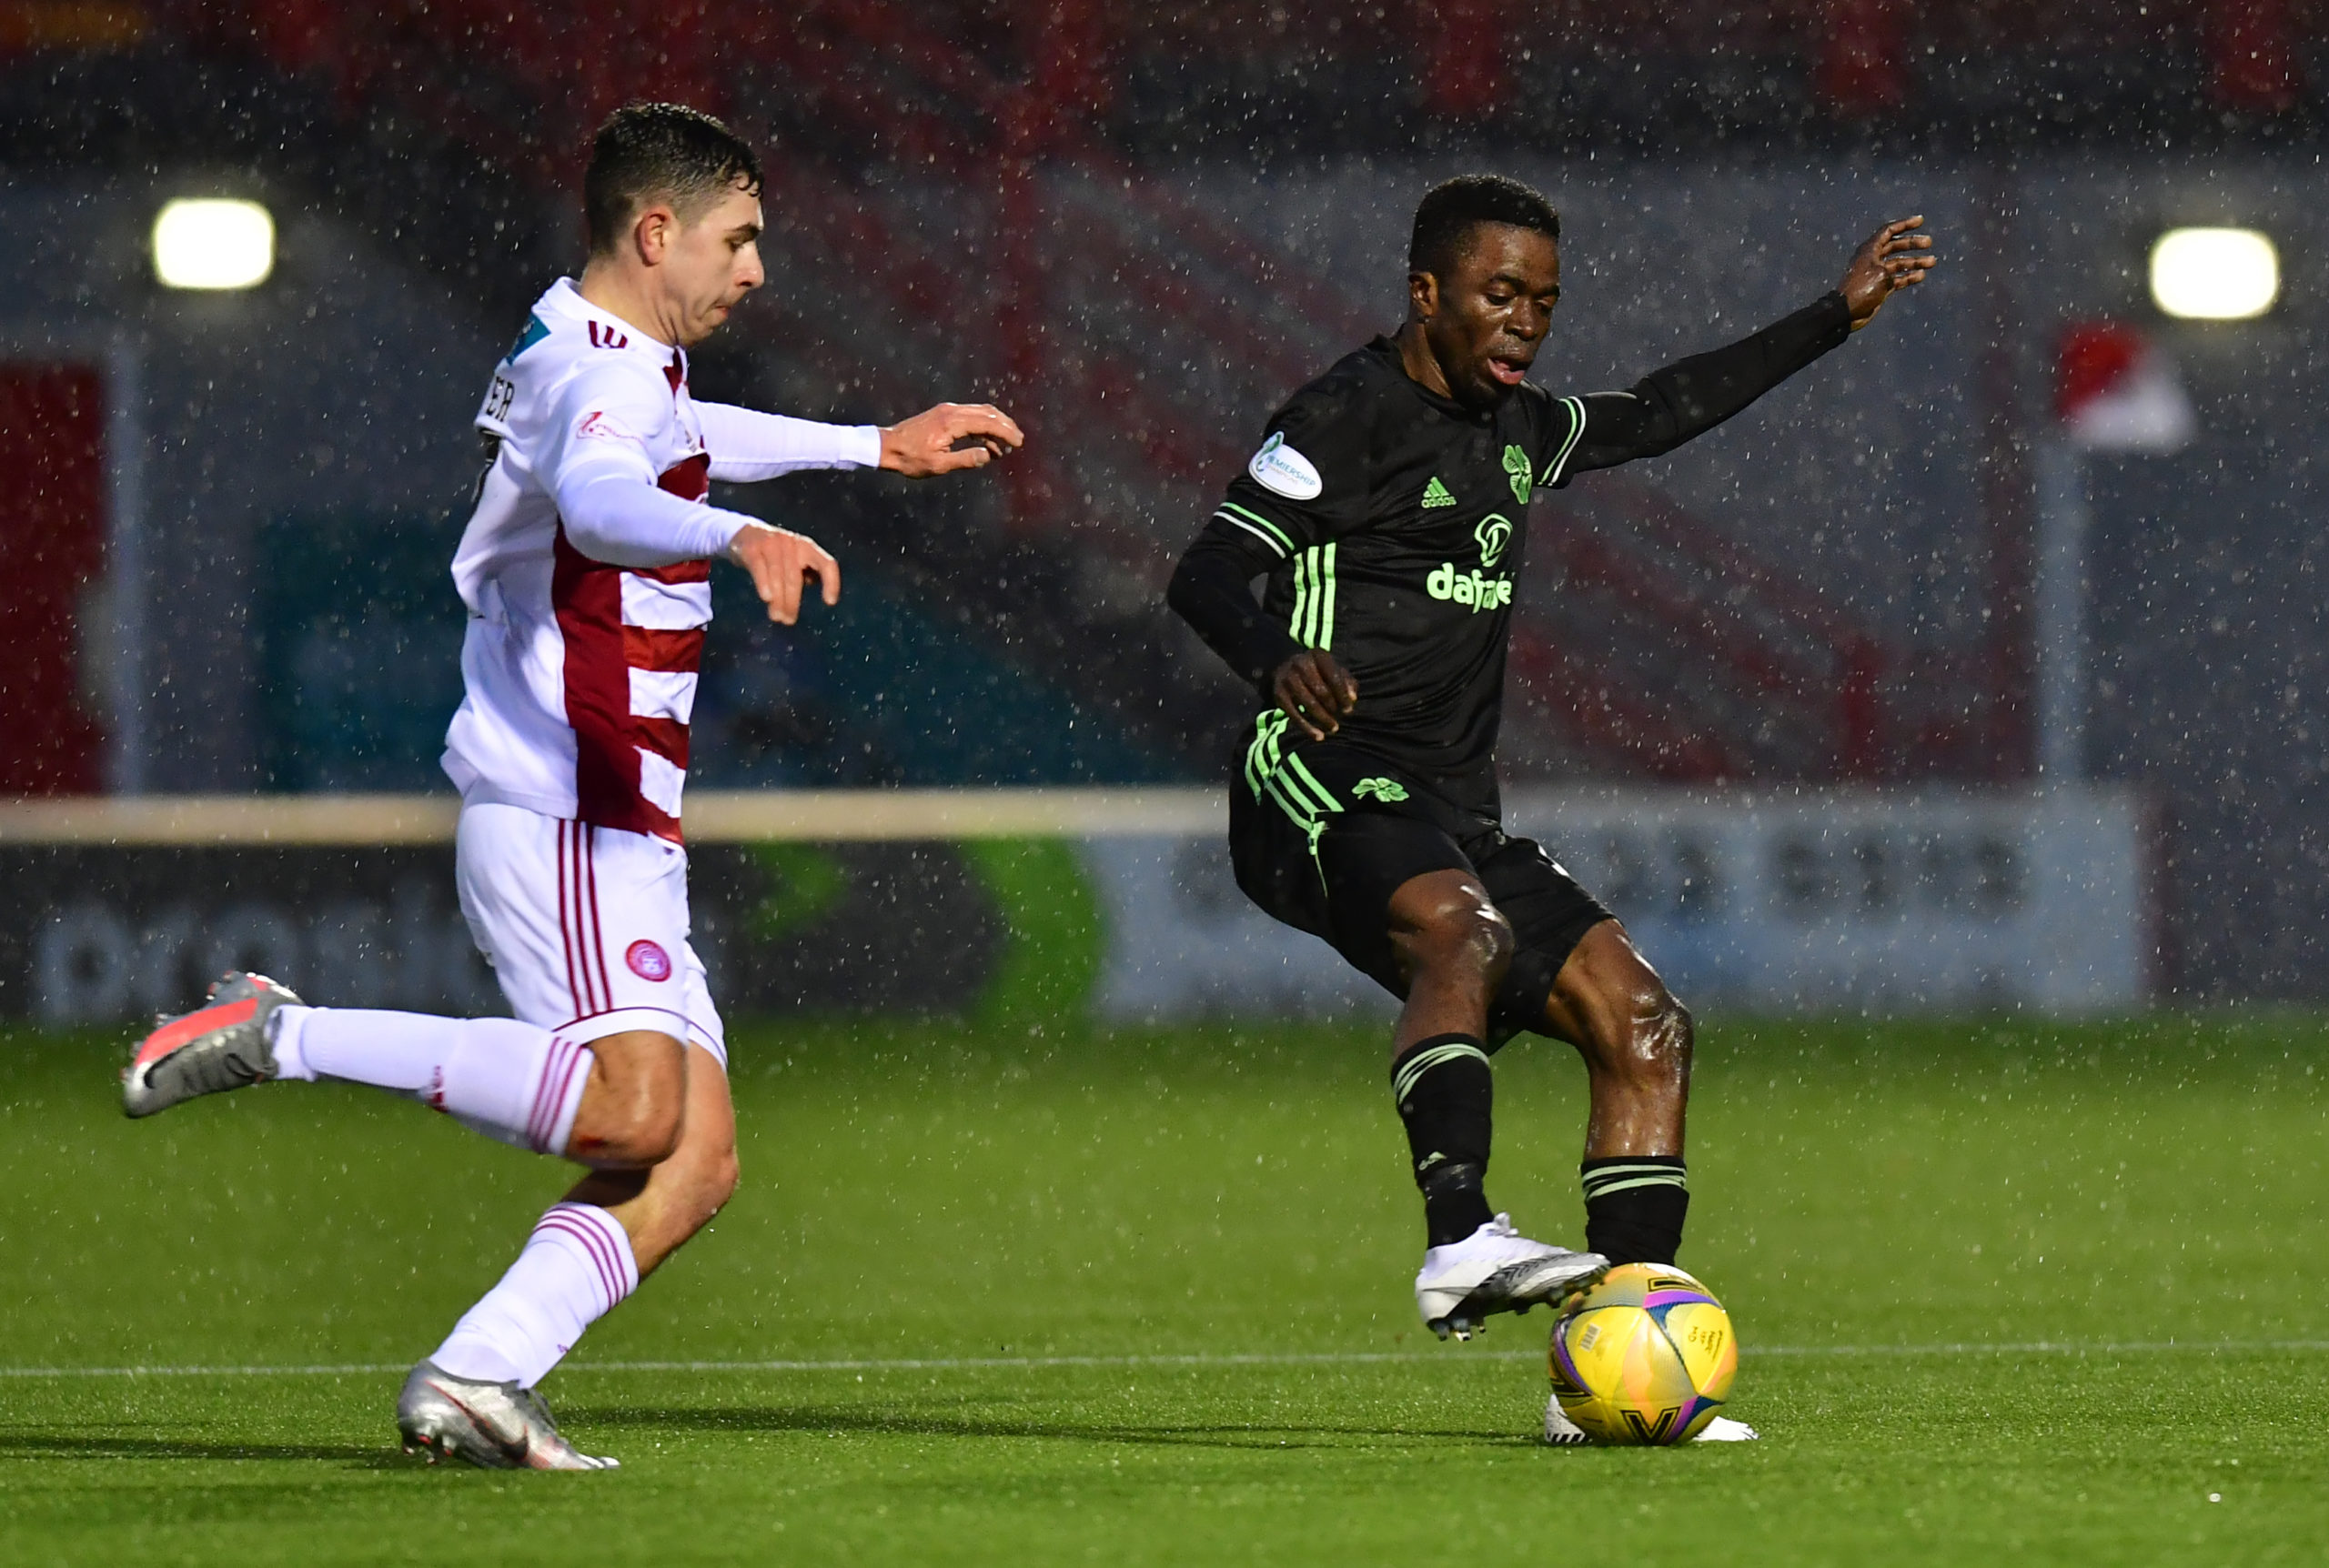 Ismaila Soro in action for Celtic against Hamilton